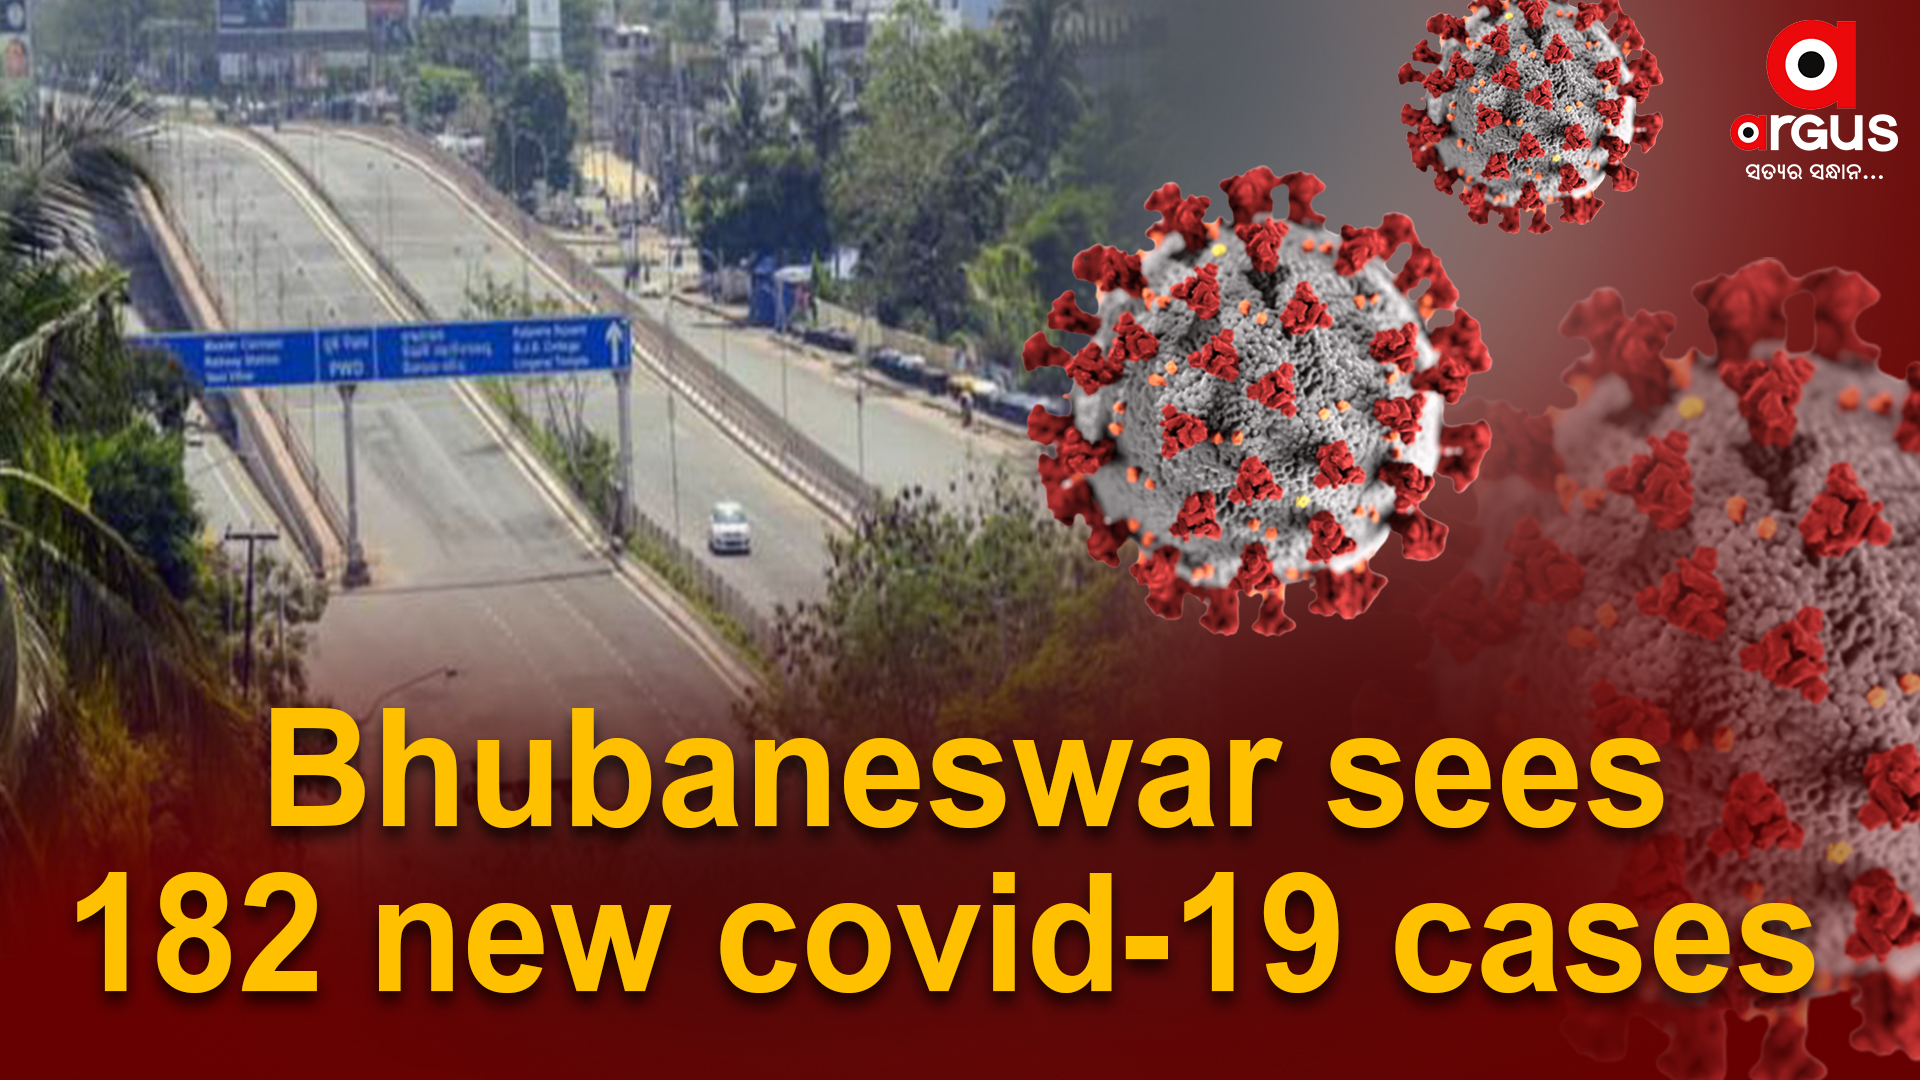 Bhubaneswar reports 182 new Covid-19 cases; Active cases stand at 2,062